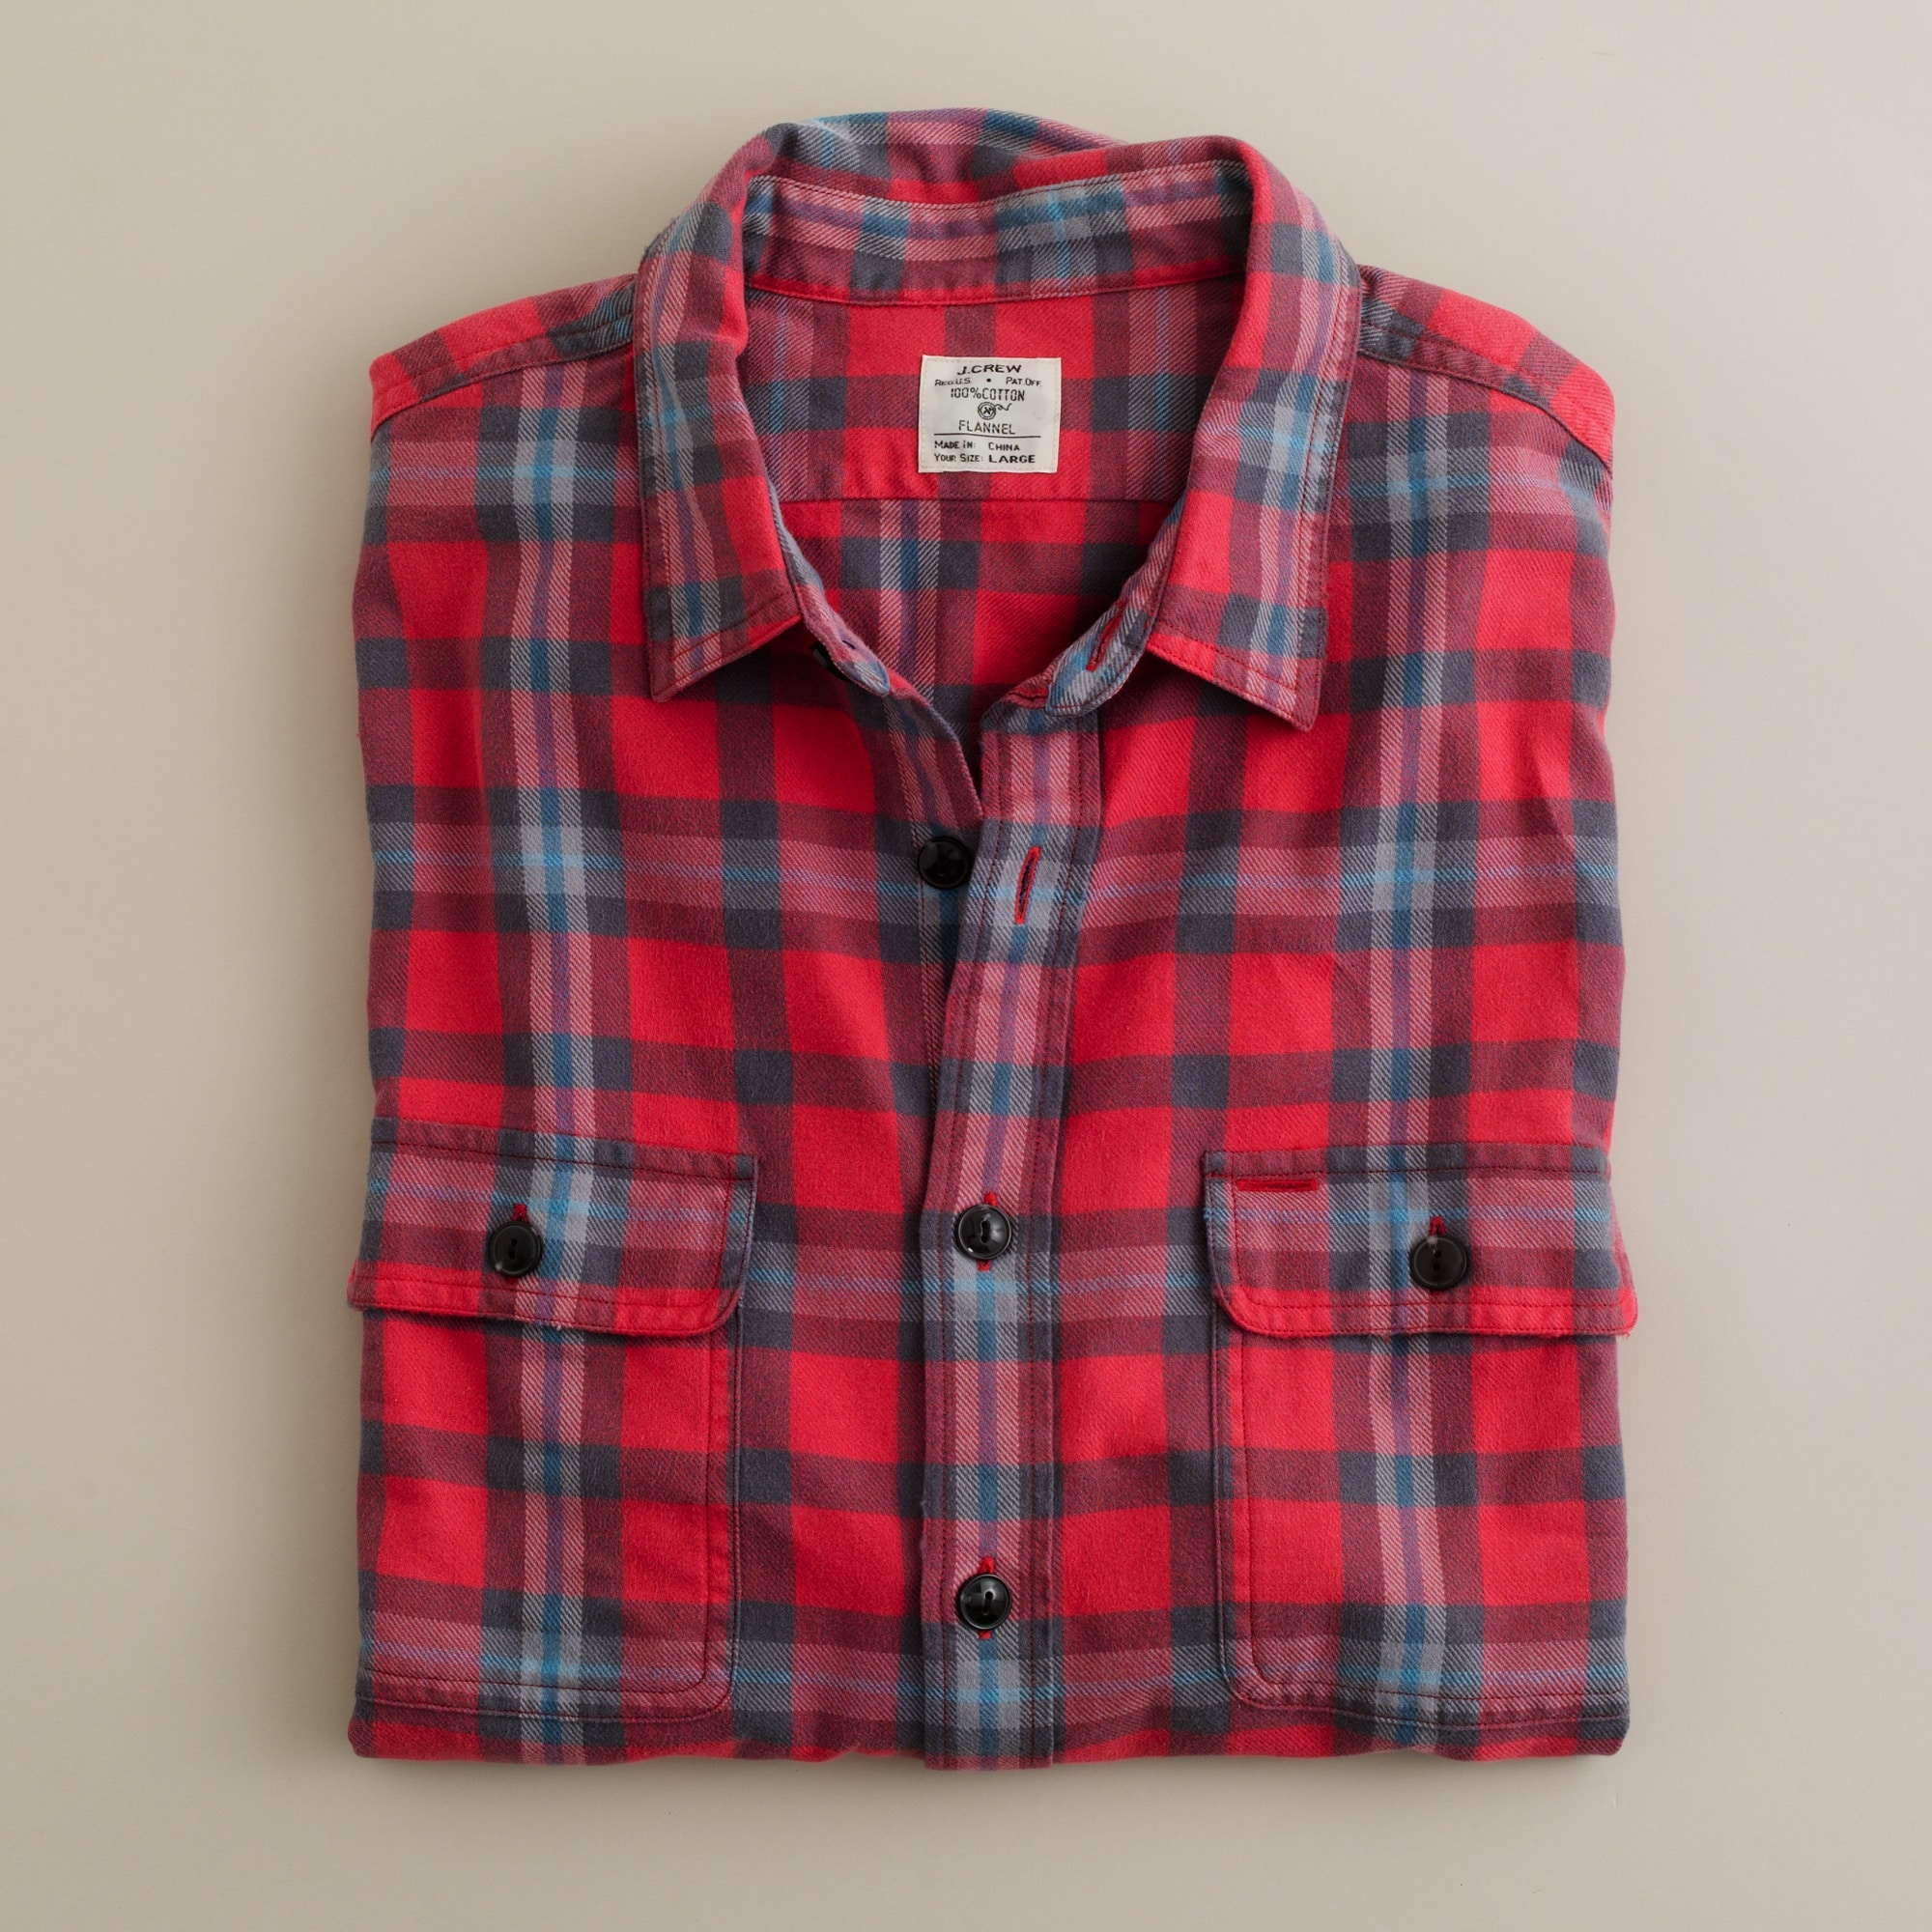 Image 2 for Vintage flannel shirt in Craigmont plaid